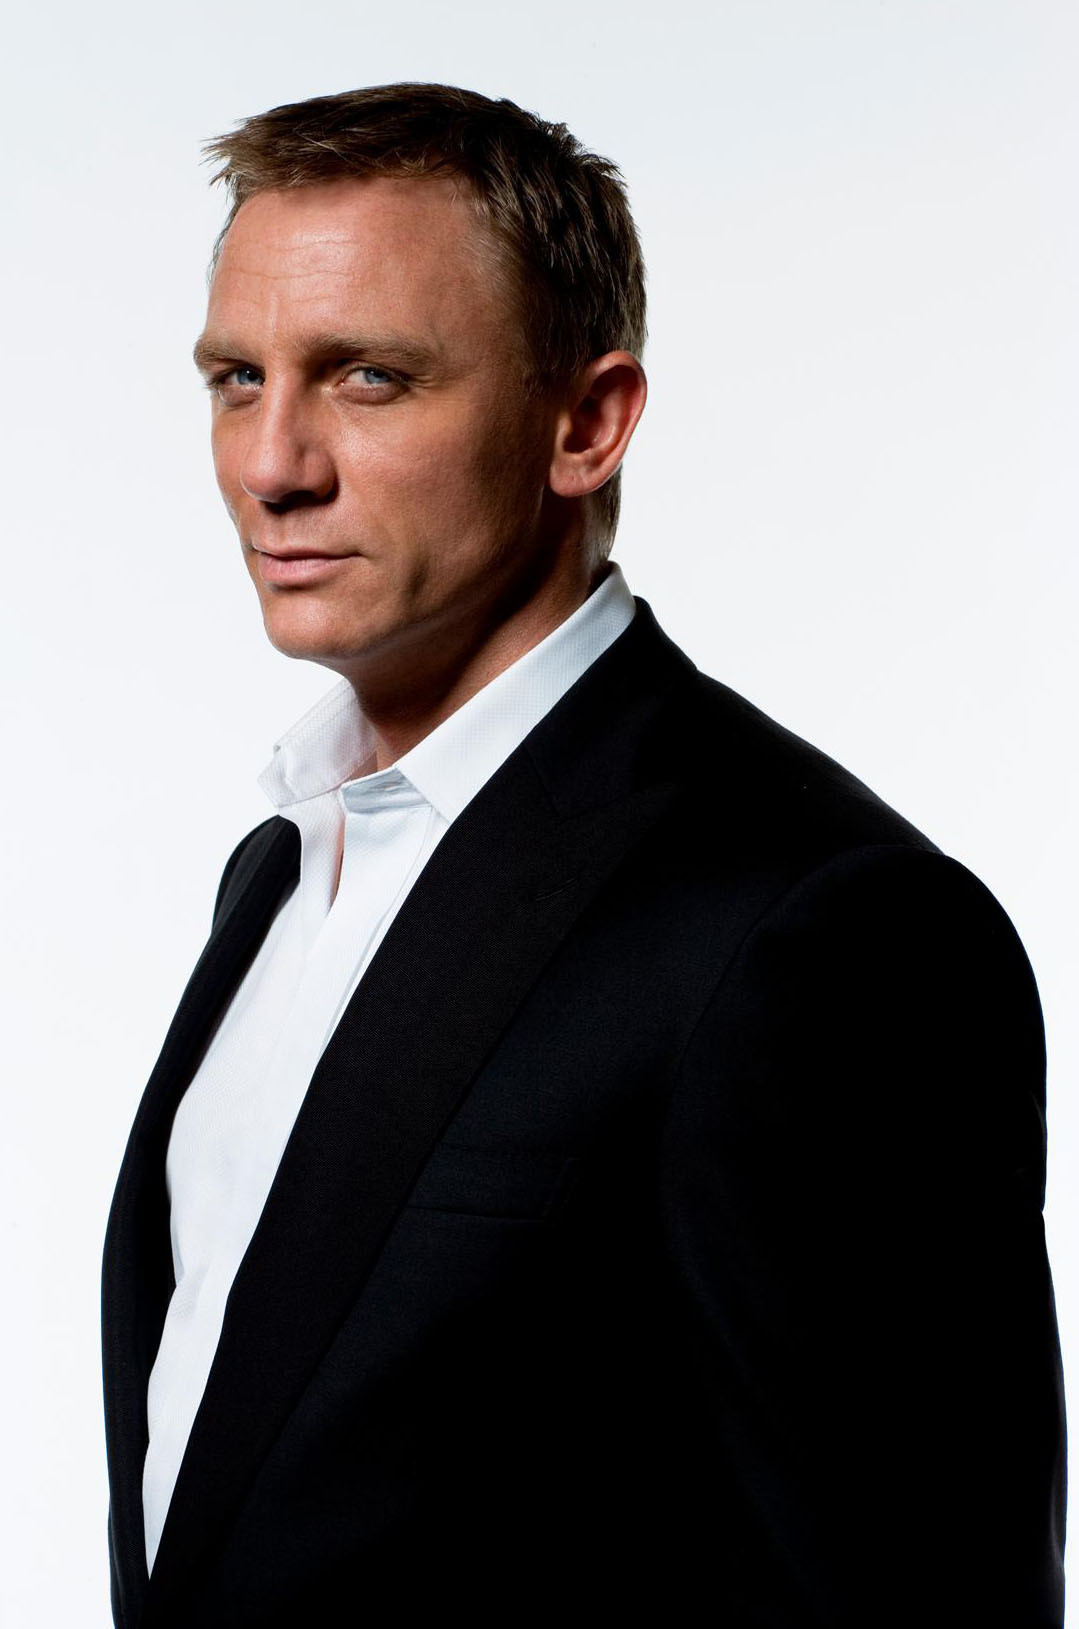 Candy Christmas Divorce  Daniel Craig Ehe